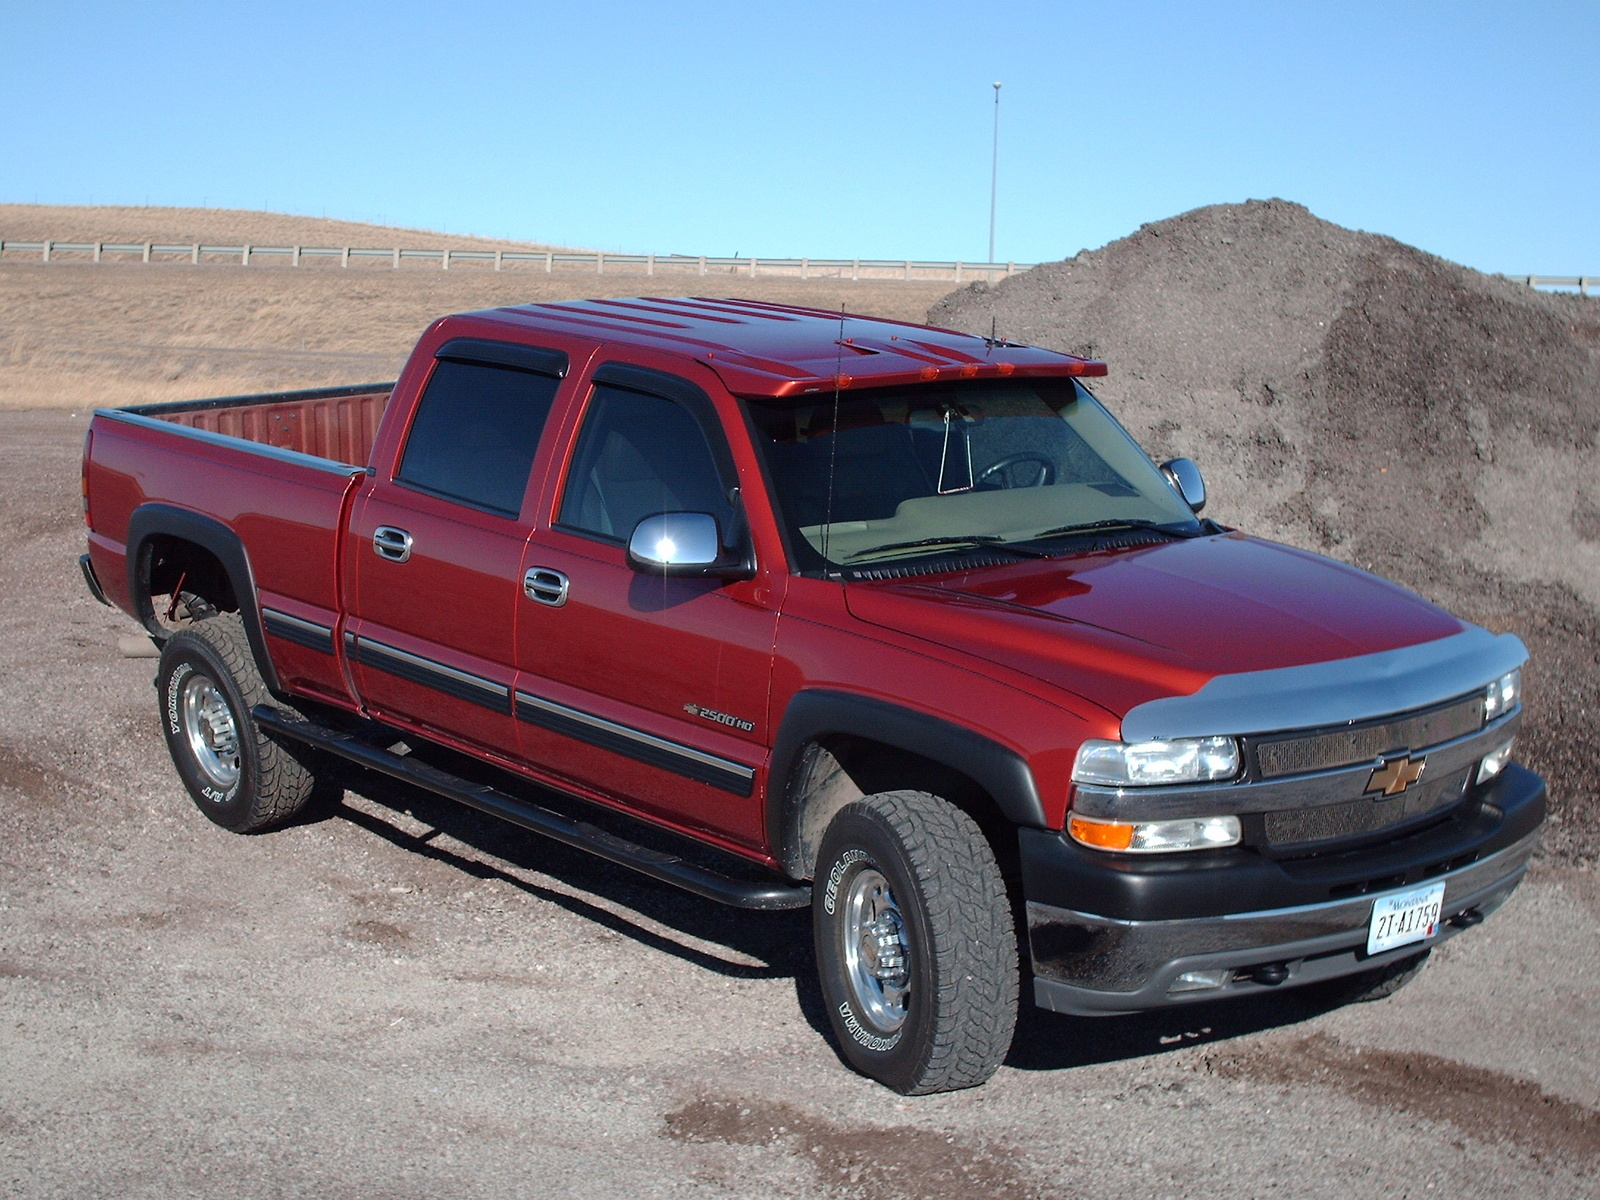 2001 chevrolet silverado 2500hd overview cargurus. Cars Review. Best American Auto & Cars Review